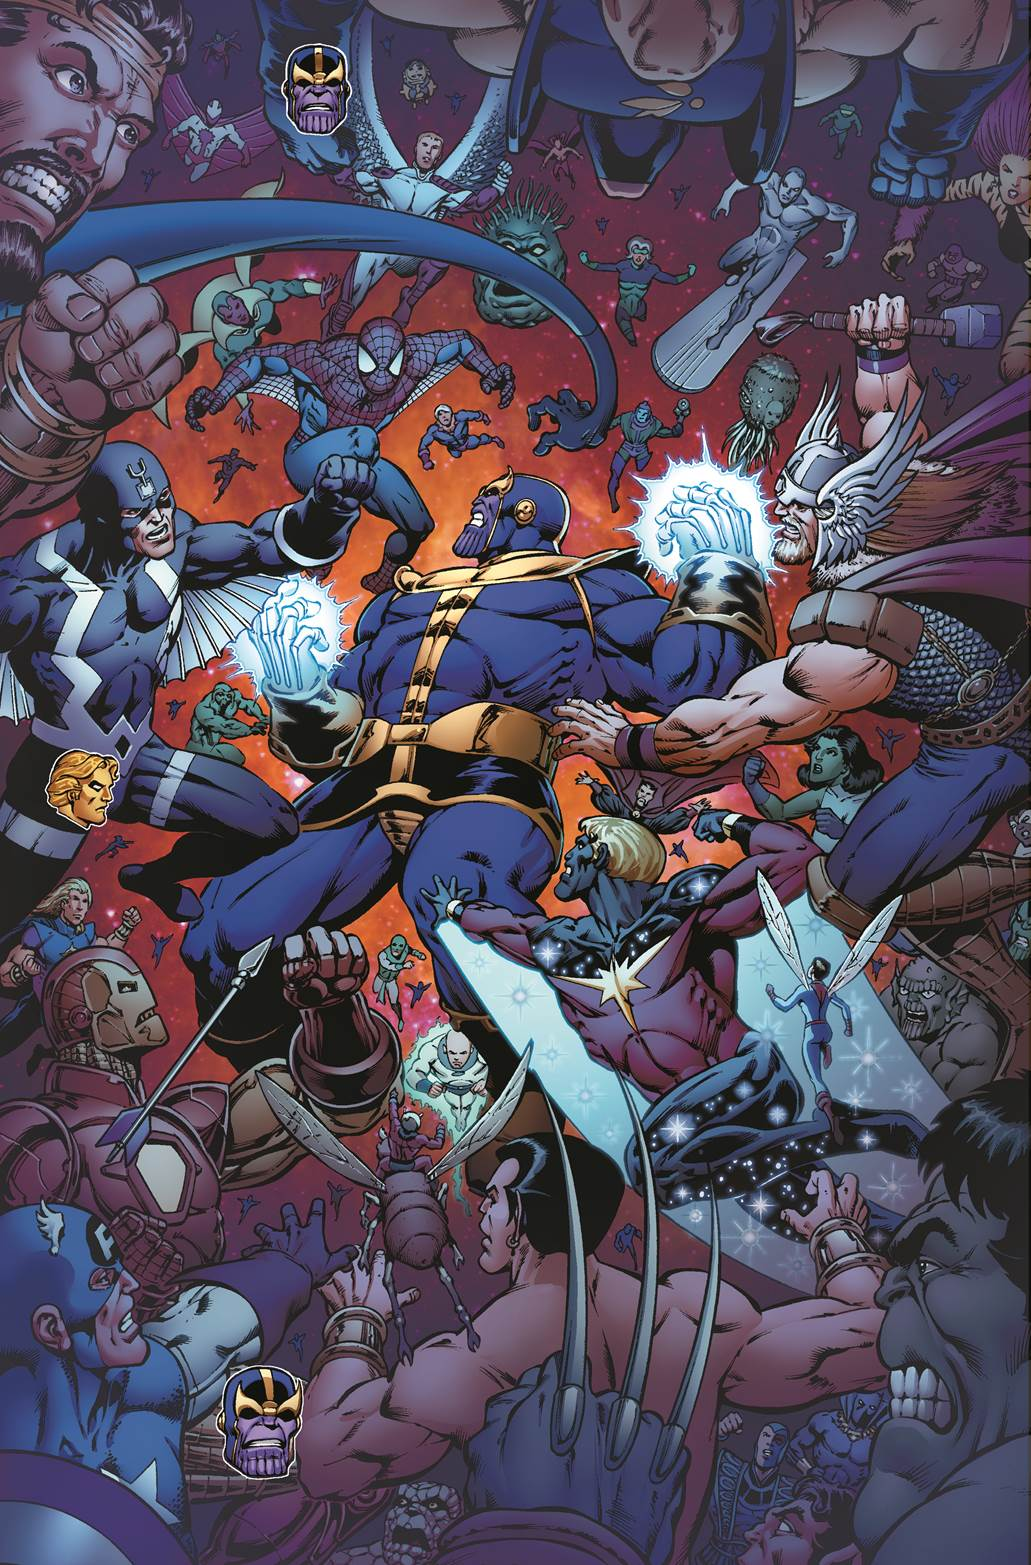 The Infinity Wart Saga Part 1 Issue: Comics: First Look At 'Thanos: The Infinity Revelation